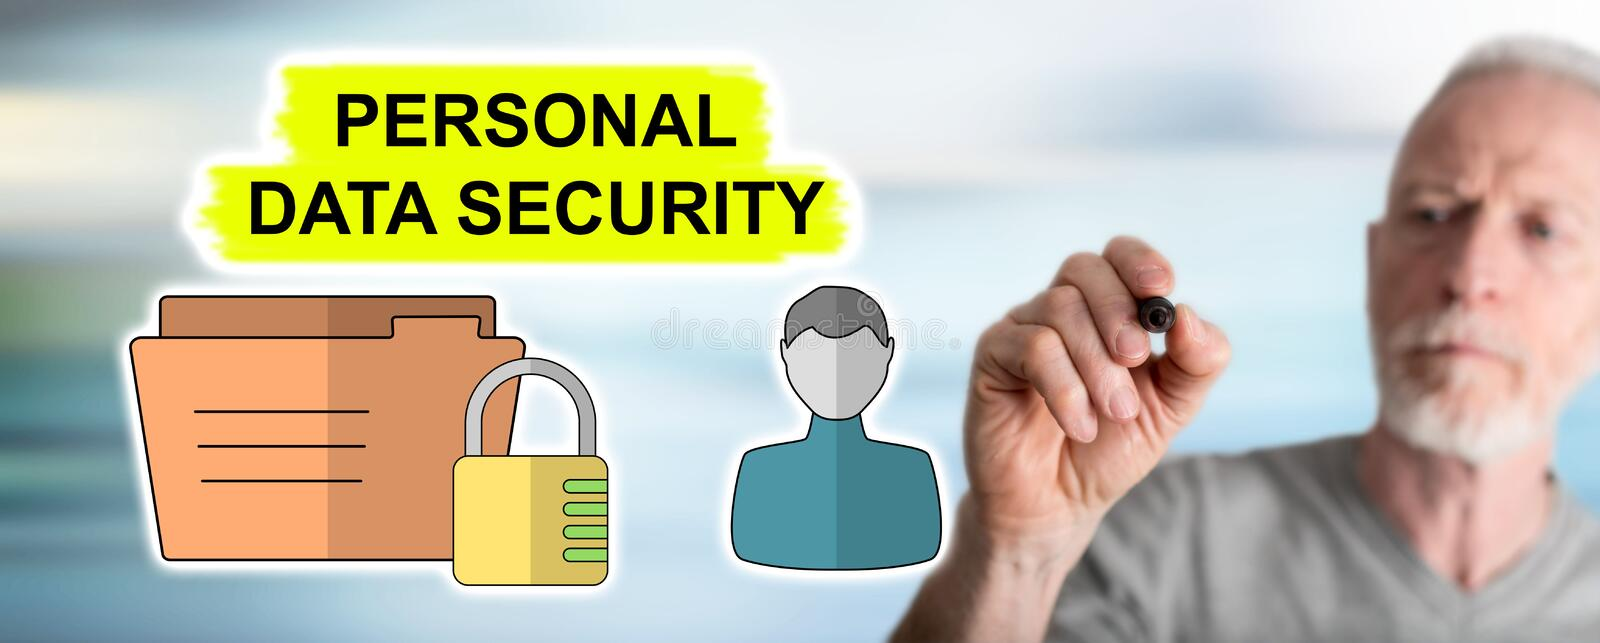 Man drawing personal data security concept. Personal data security concept drawn by a man royalty free stock images